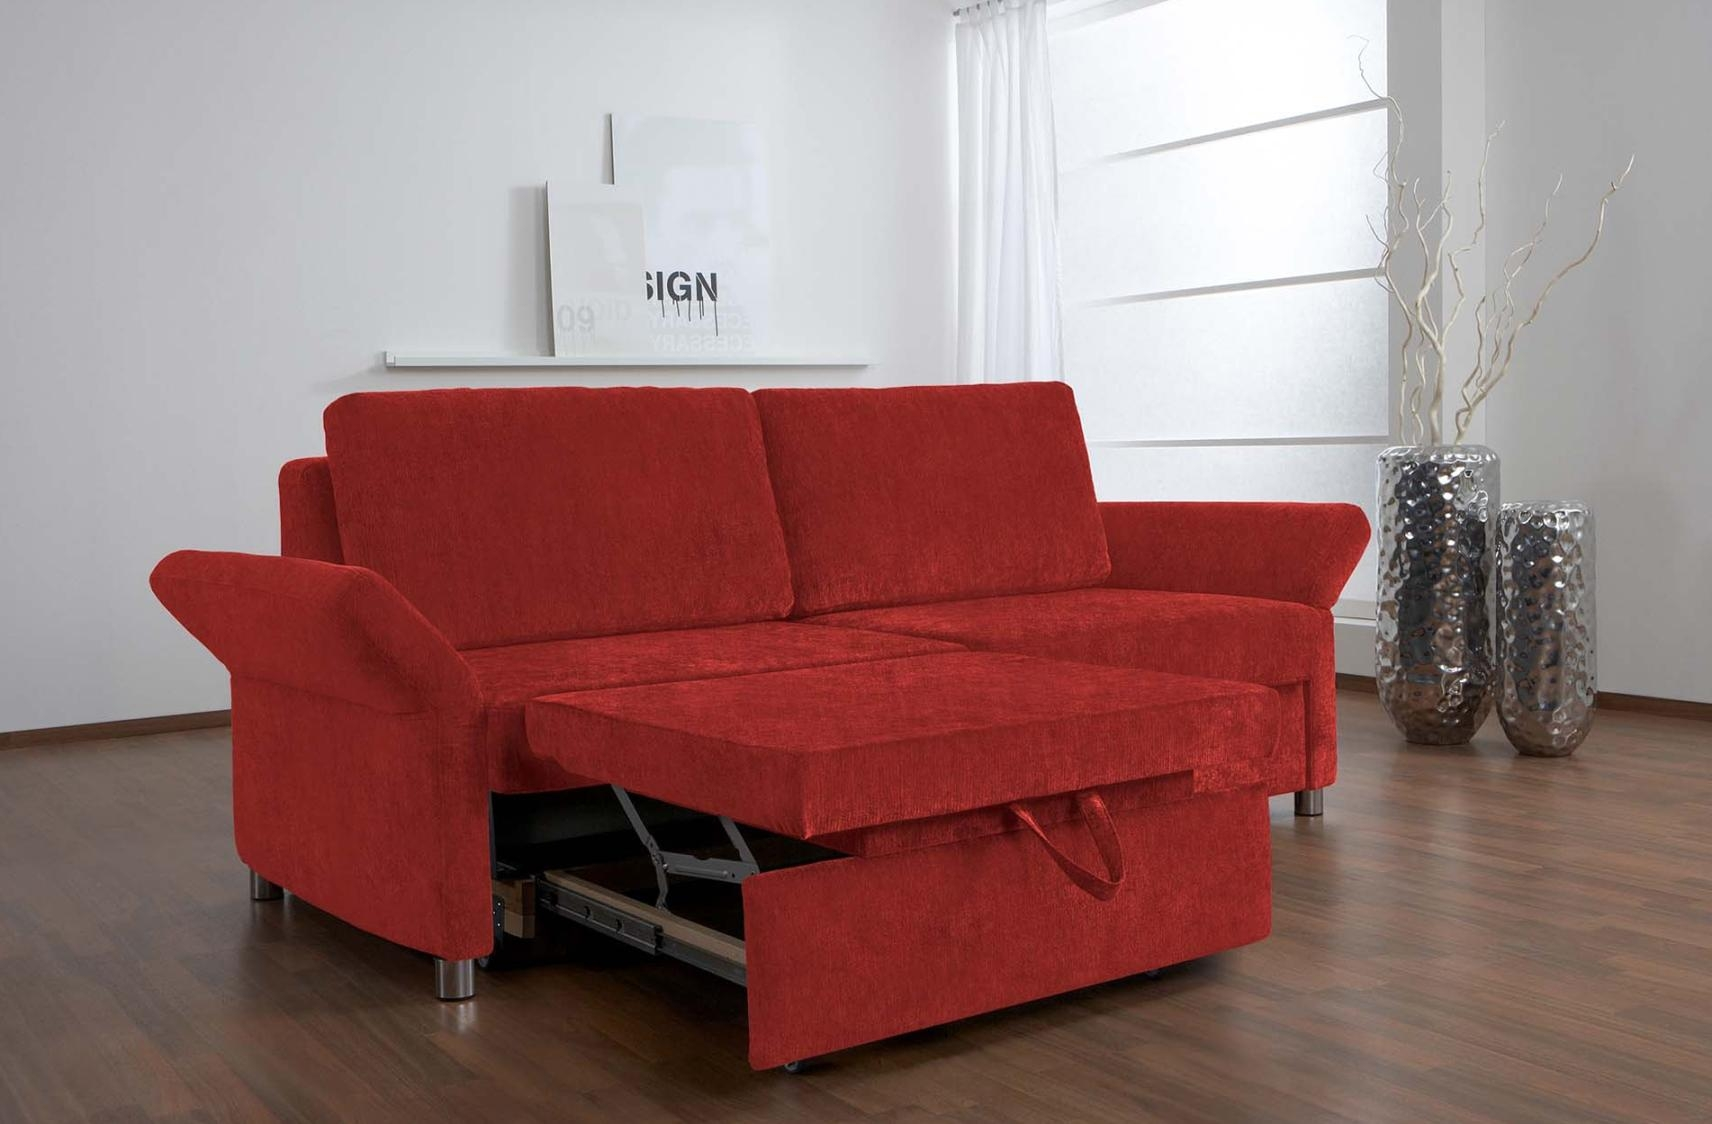 Essen Sleeper Sofa – The Best Pull Out Sofa Bednordholtz For Red Sleeper Sofa (View 4 of 20)